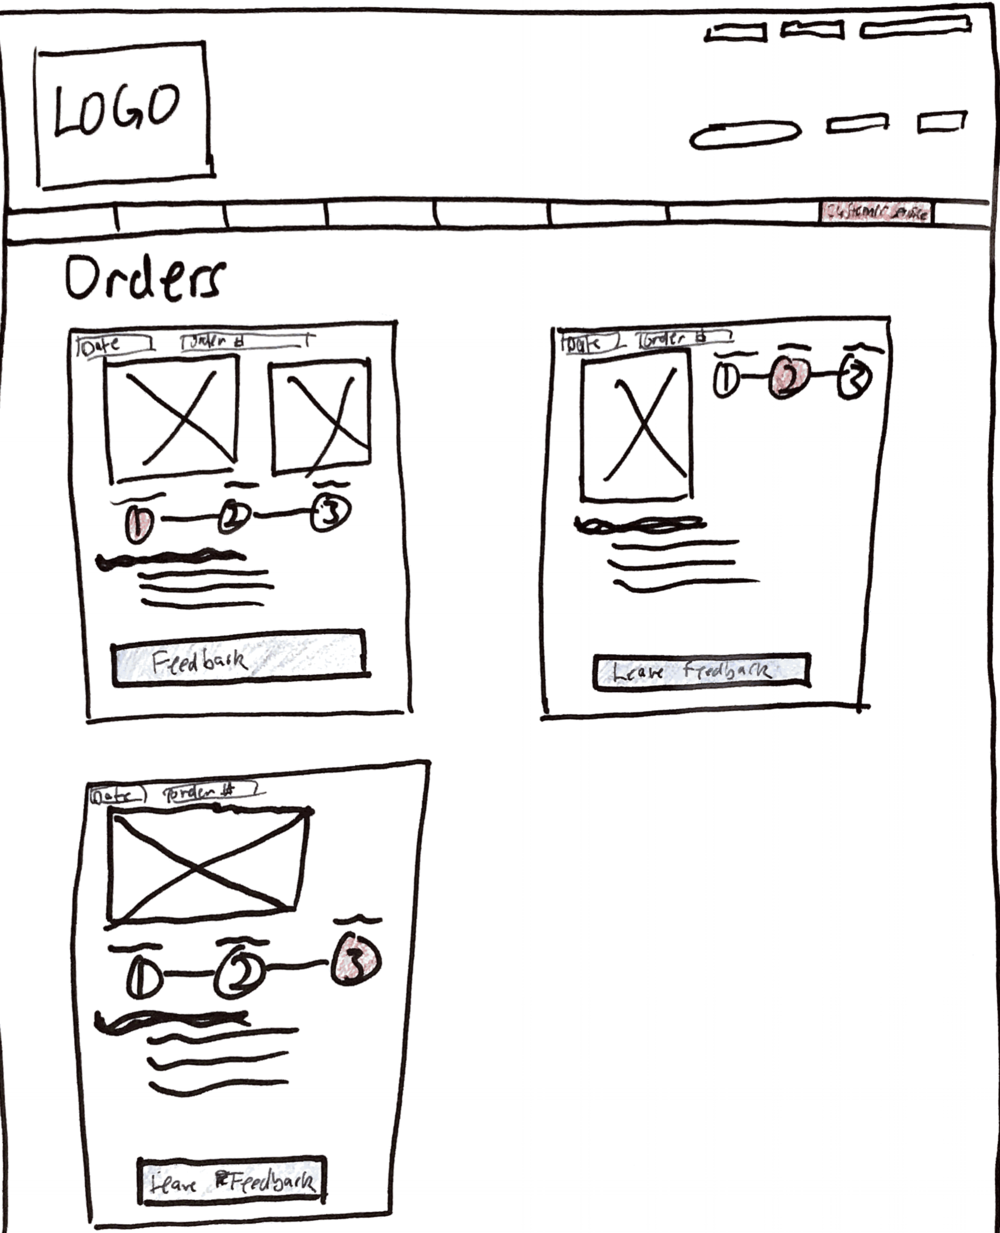 Leveraging modular design to convey information quickly - My goal was to create a modular design that would inform the customer of where, what, and when they could expect their package to be delivered.